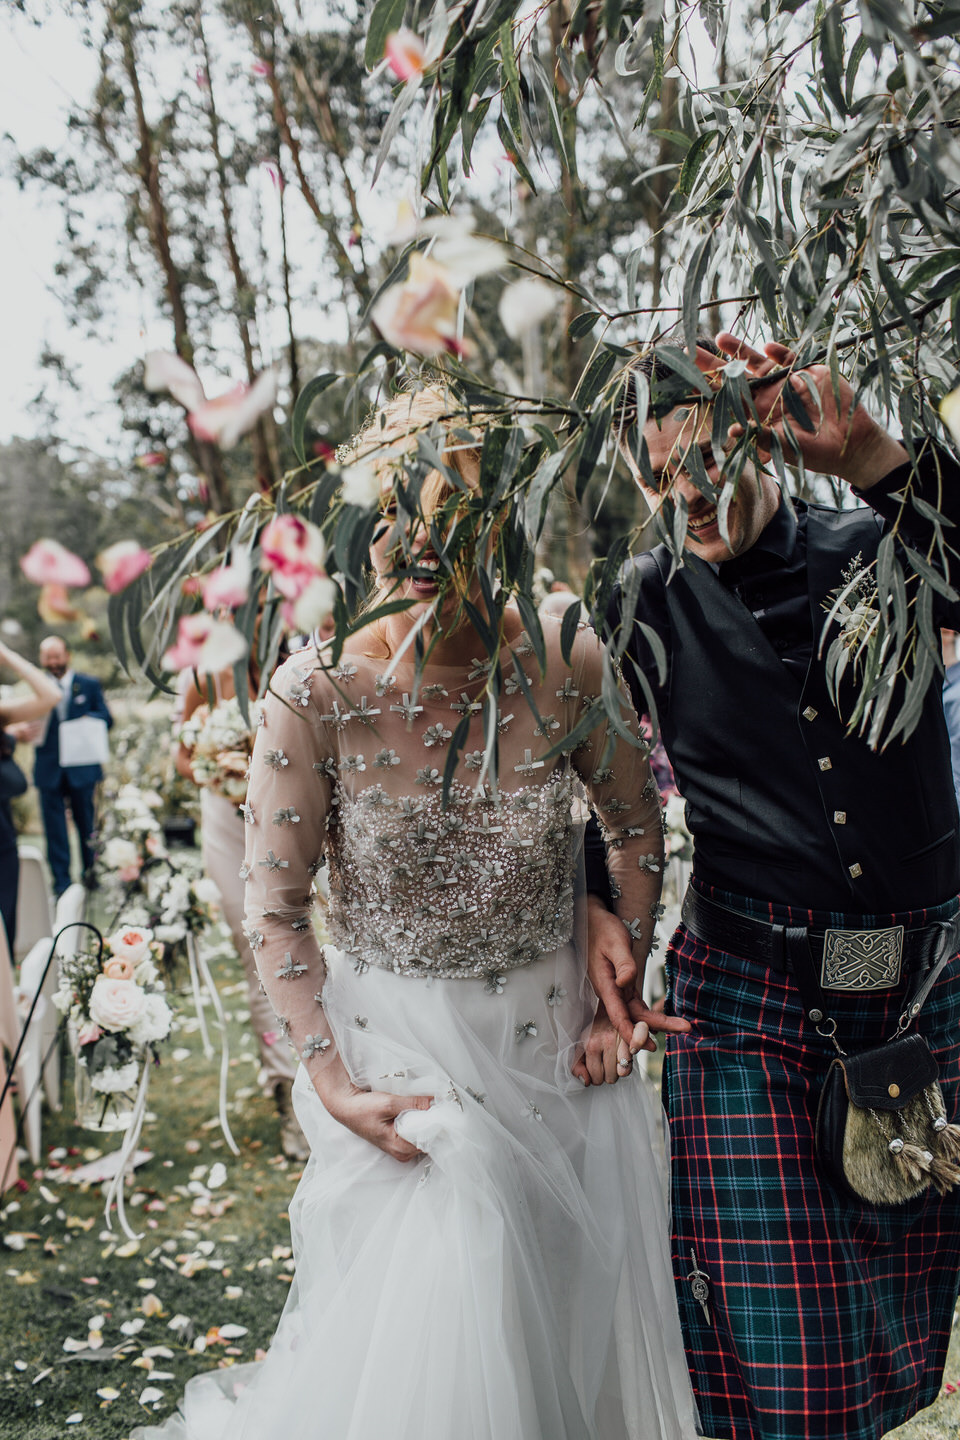 Bride and groom walking down aisle at Wombat Hollow after wedding ceremony to cheers and confetti